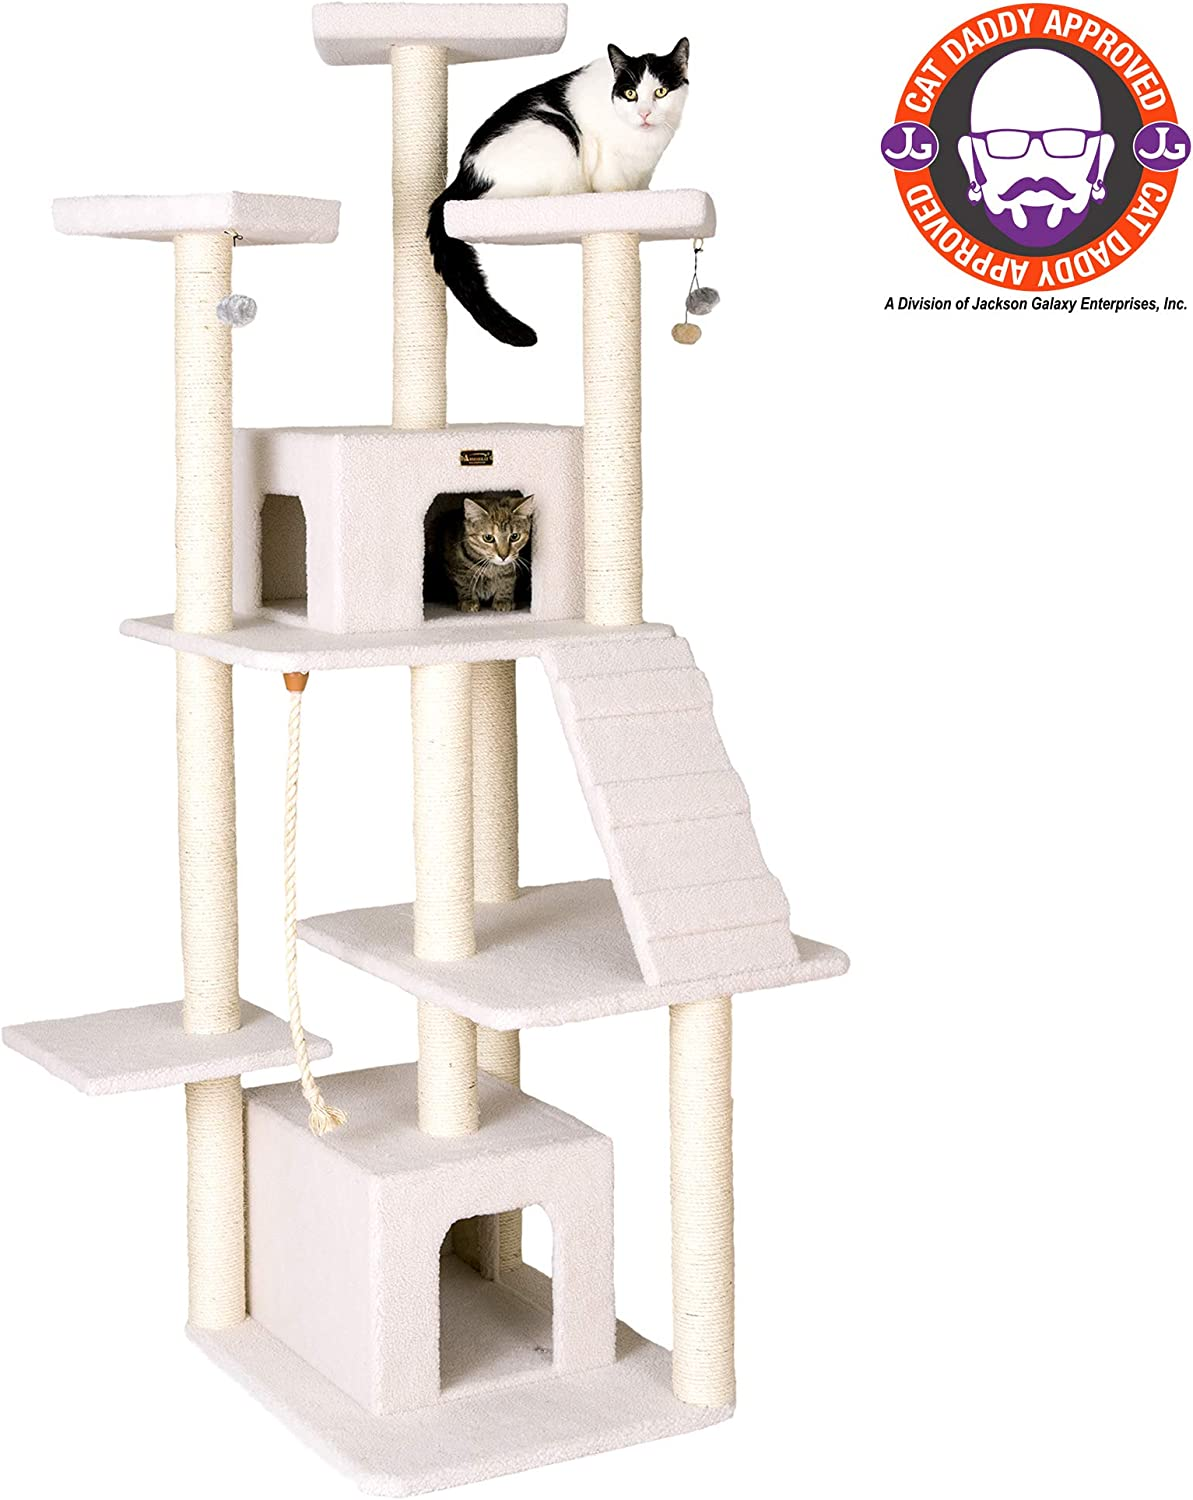 Armarkat B8201 82 Classic Cat Tree Model Ivory Pet Supplies